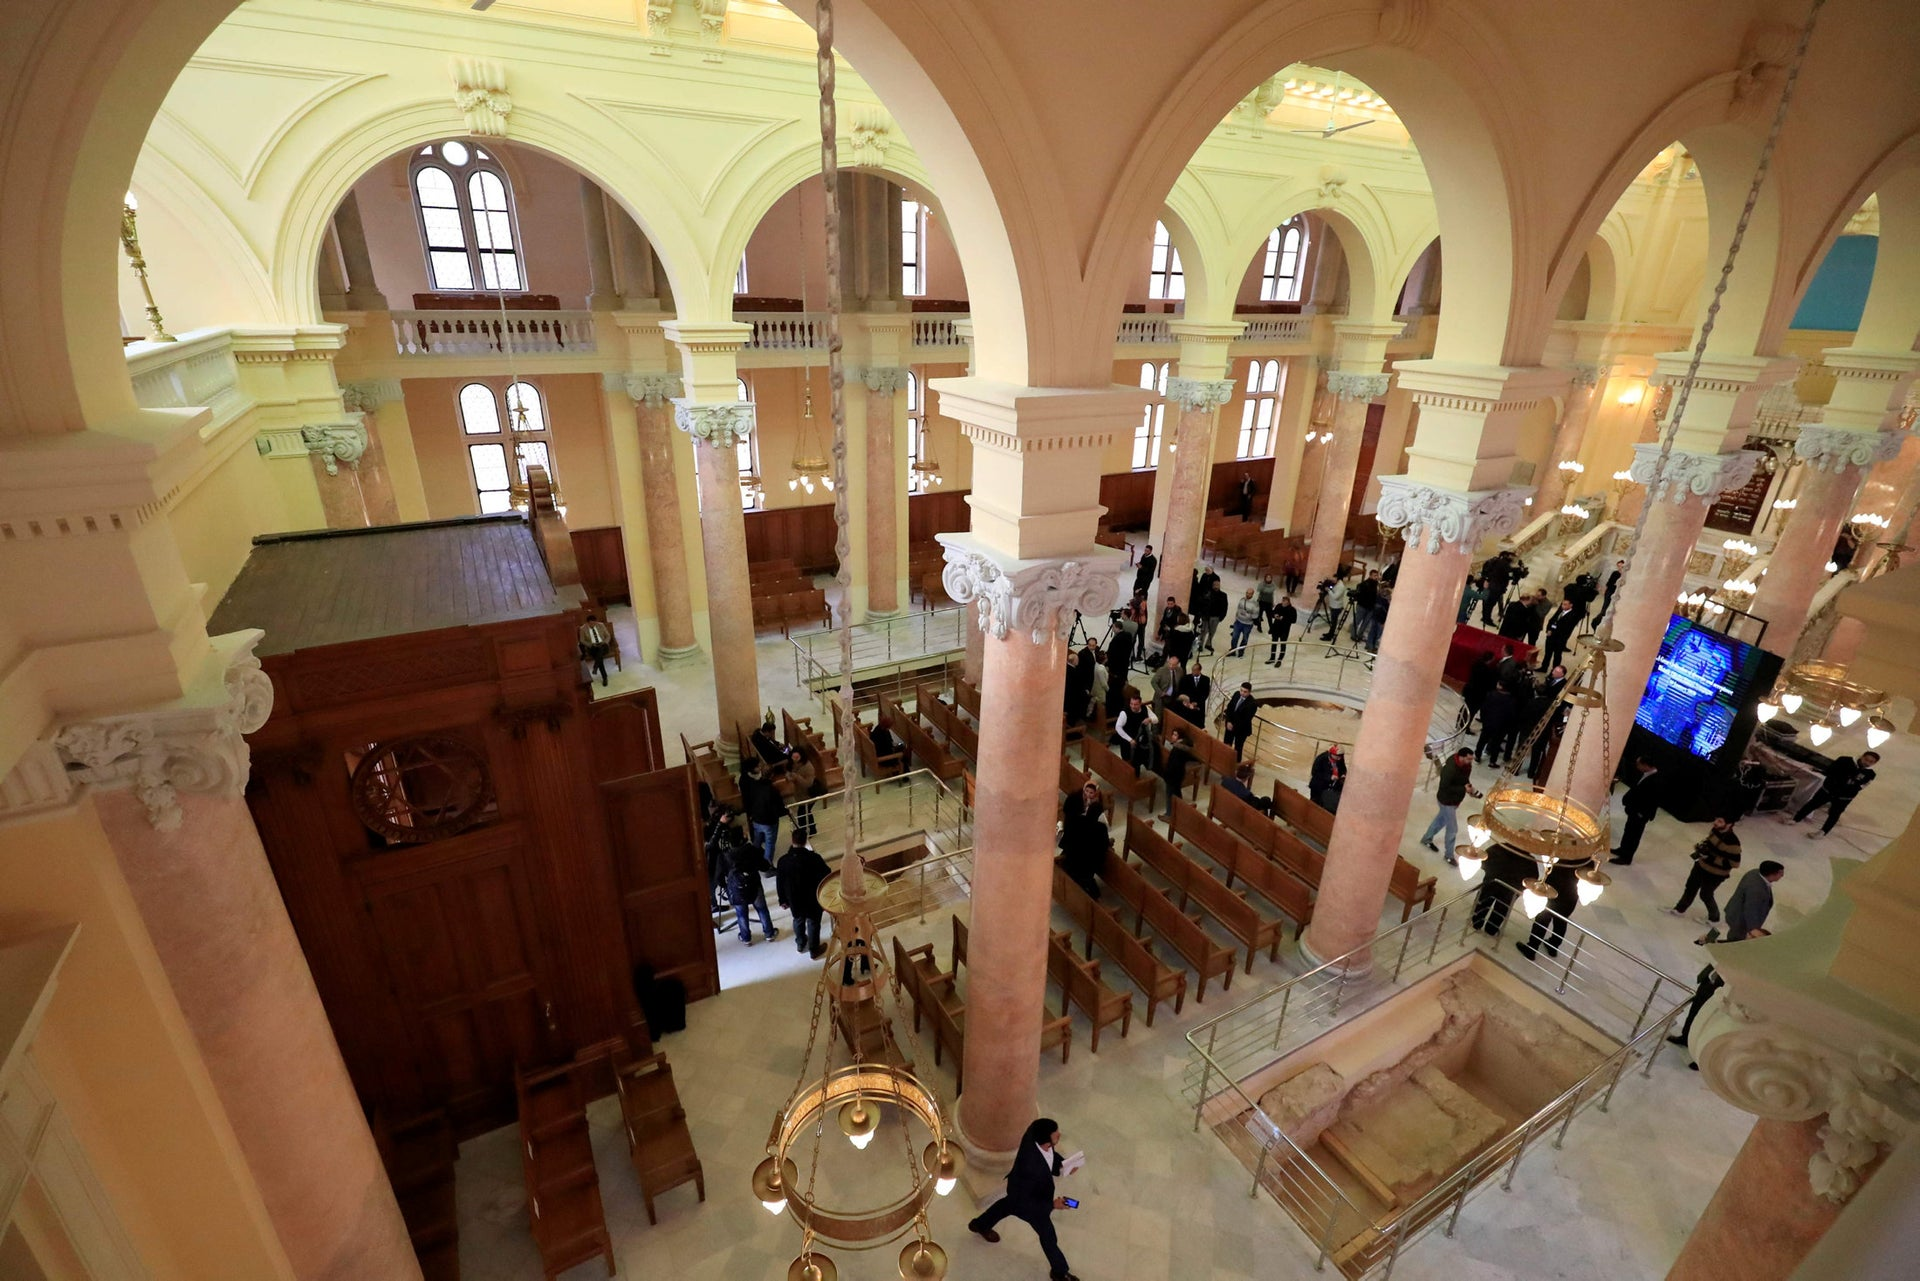 A view from the women's balcony of the Eliyahu Hanavi synagogue in Alexandria, Egypt, January 10, 2020.